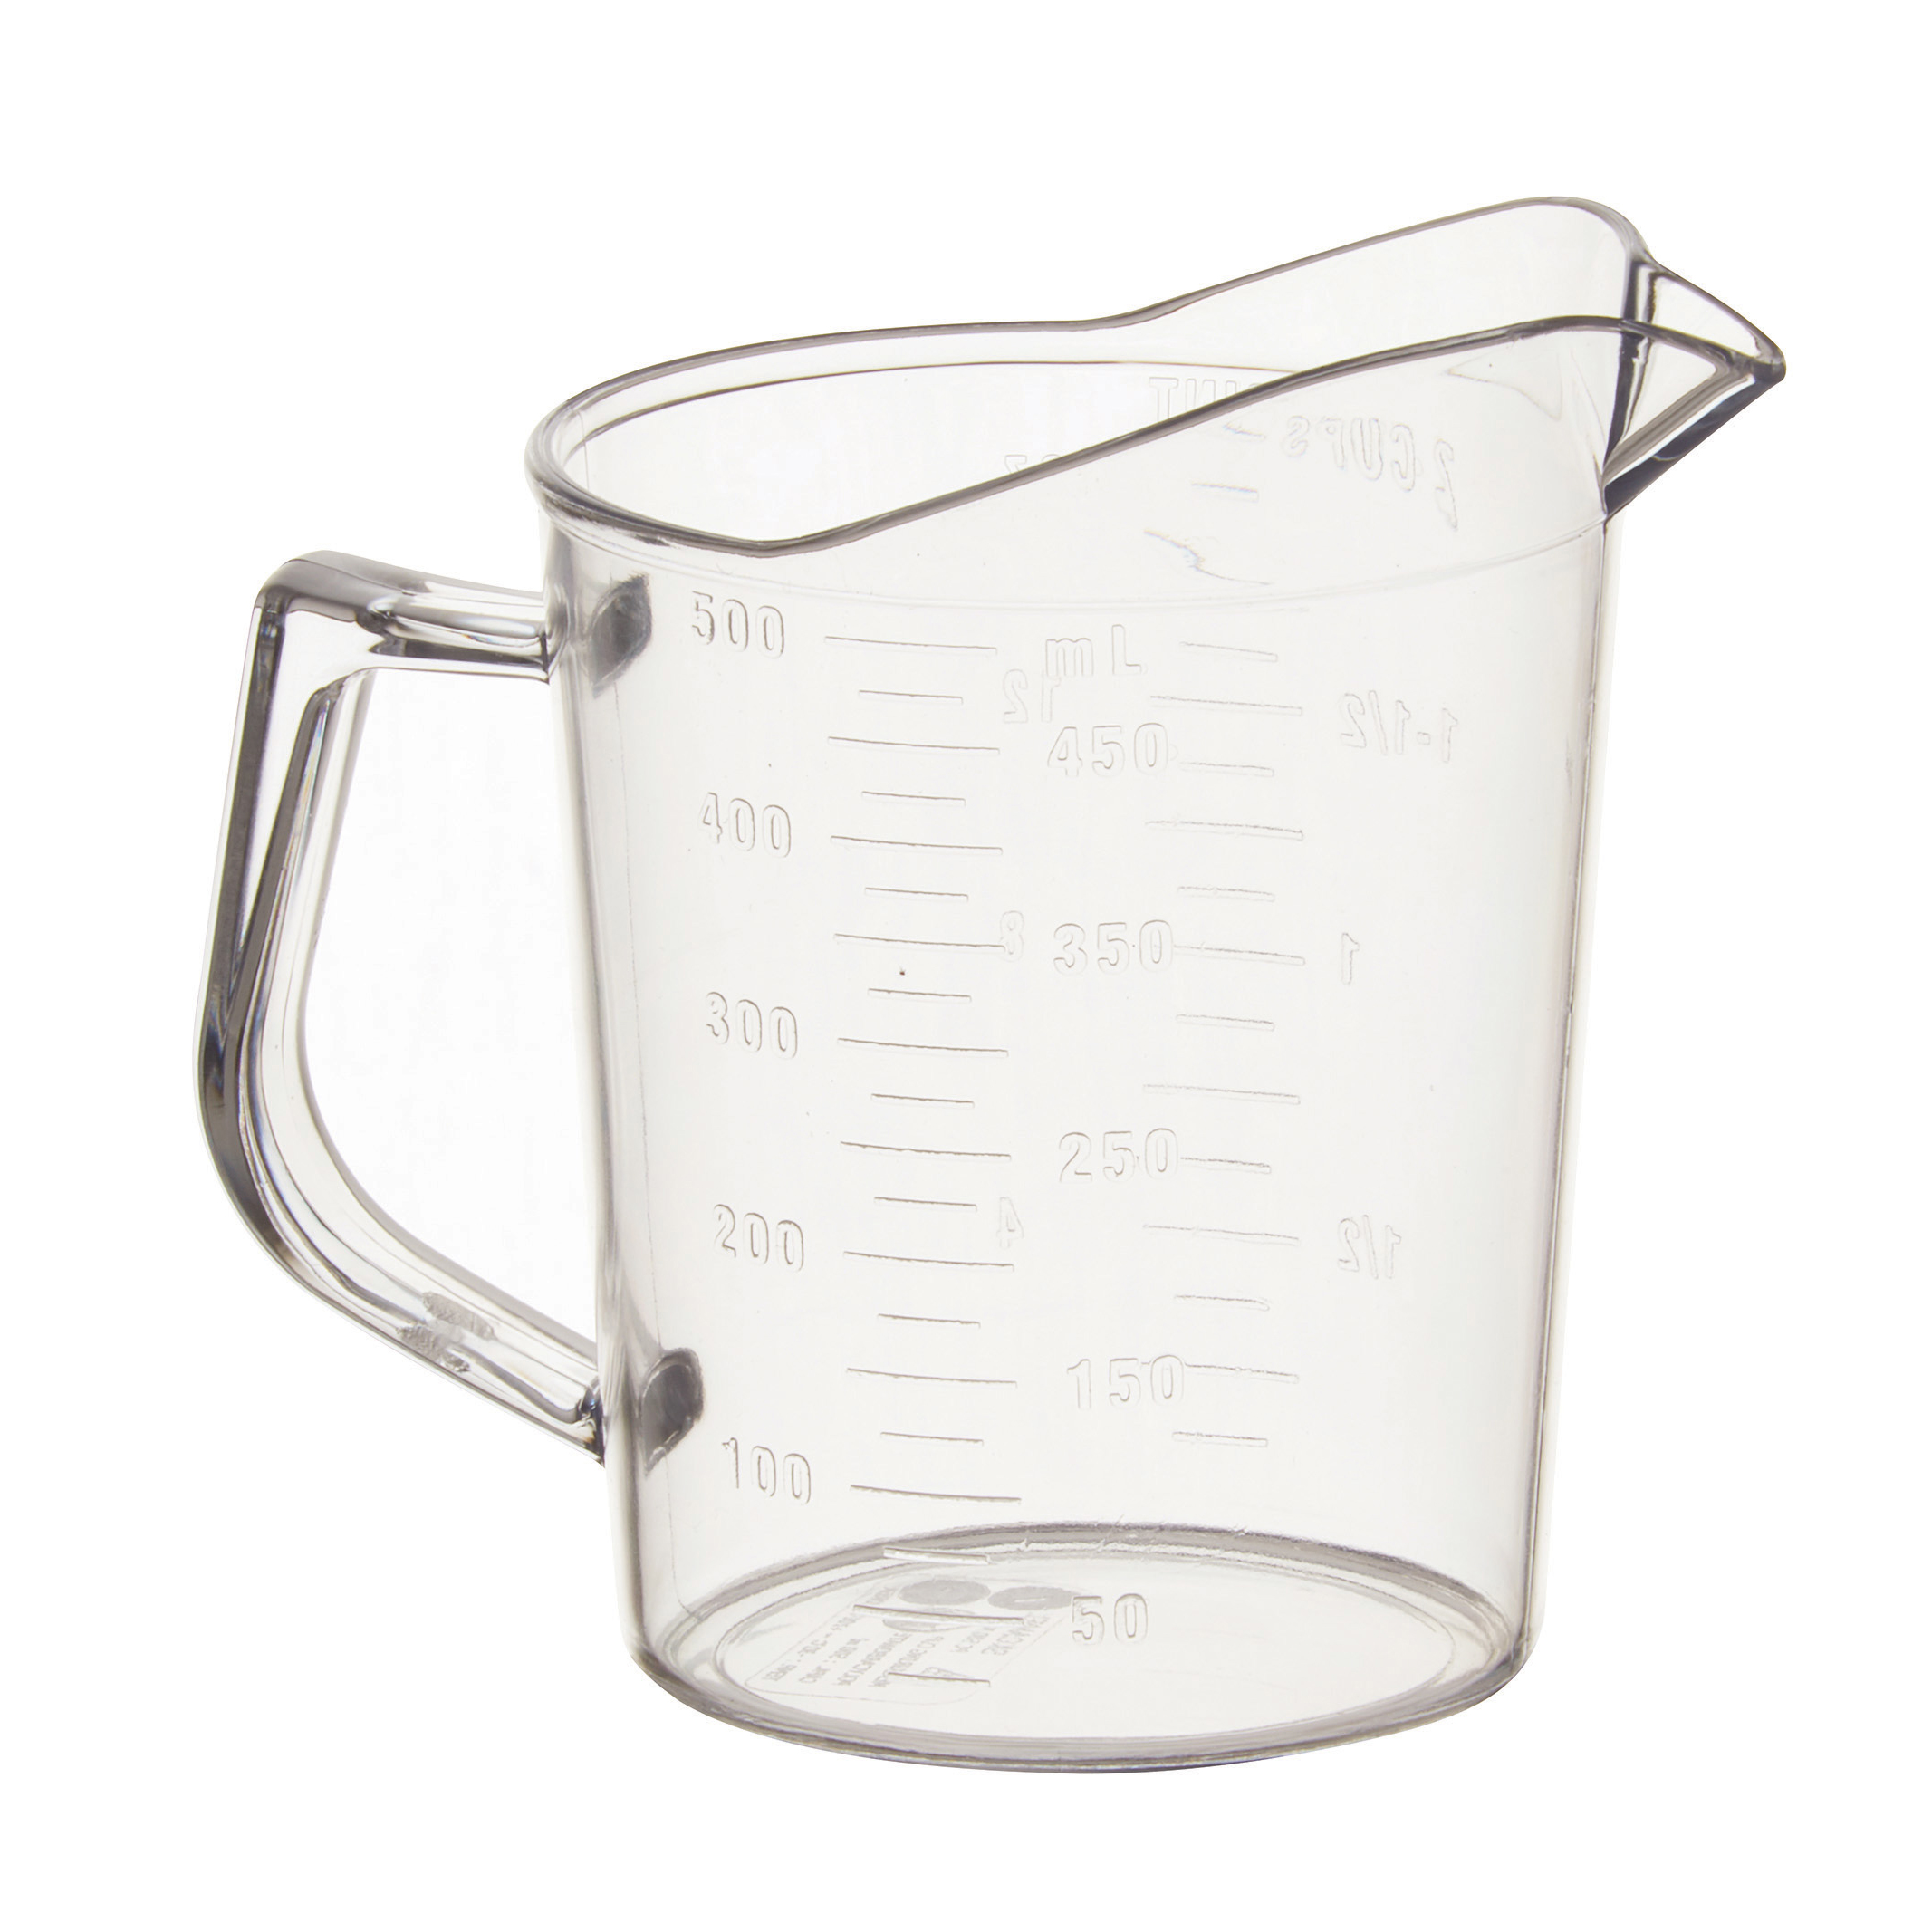 Winco PMU-50 measuring cups